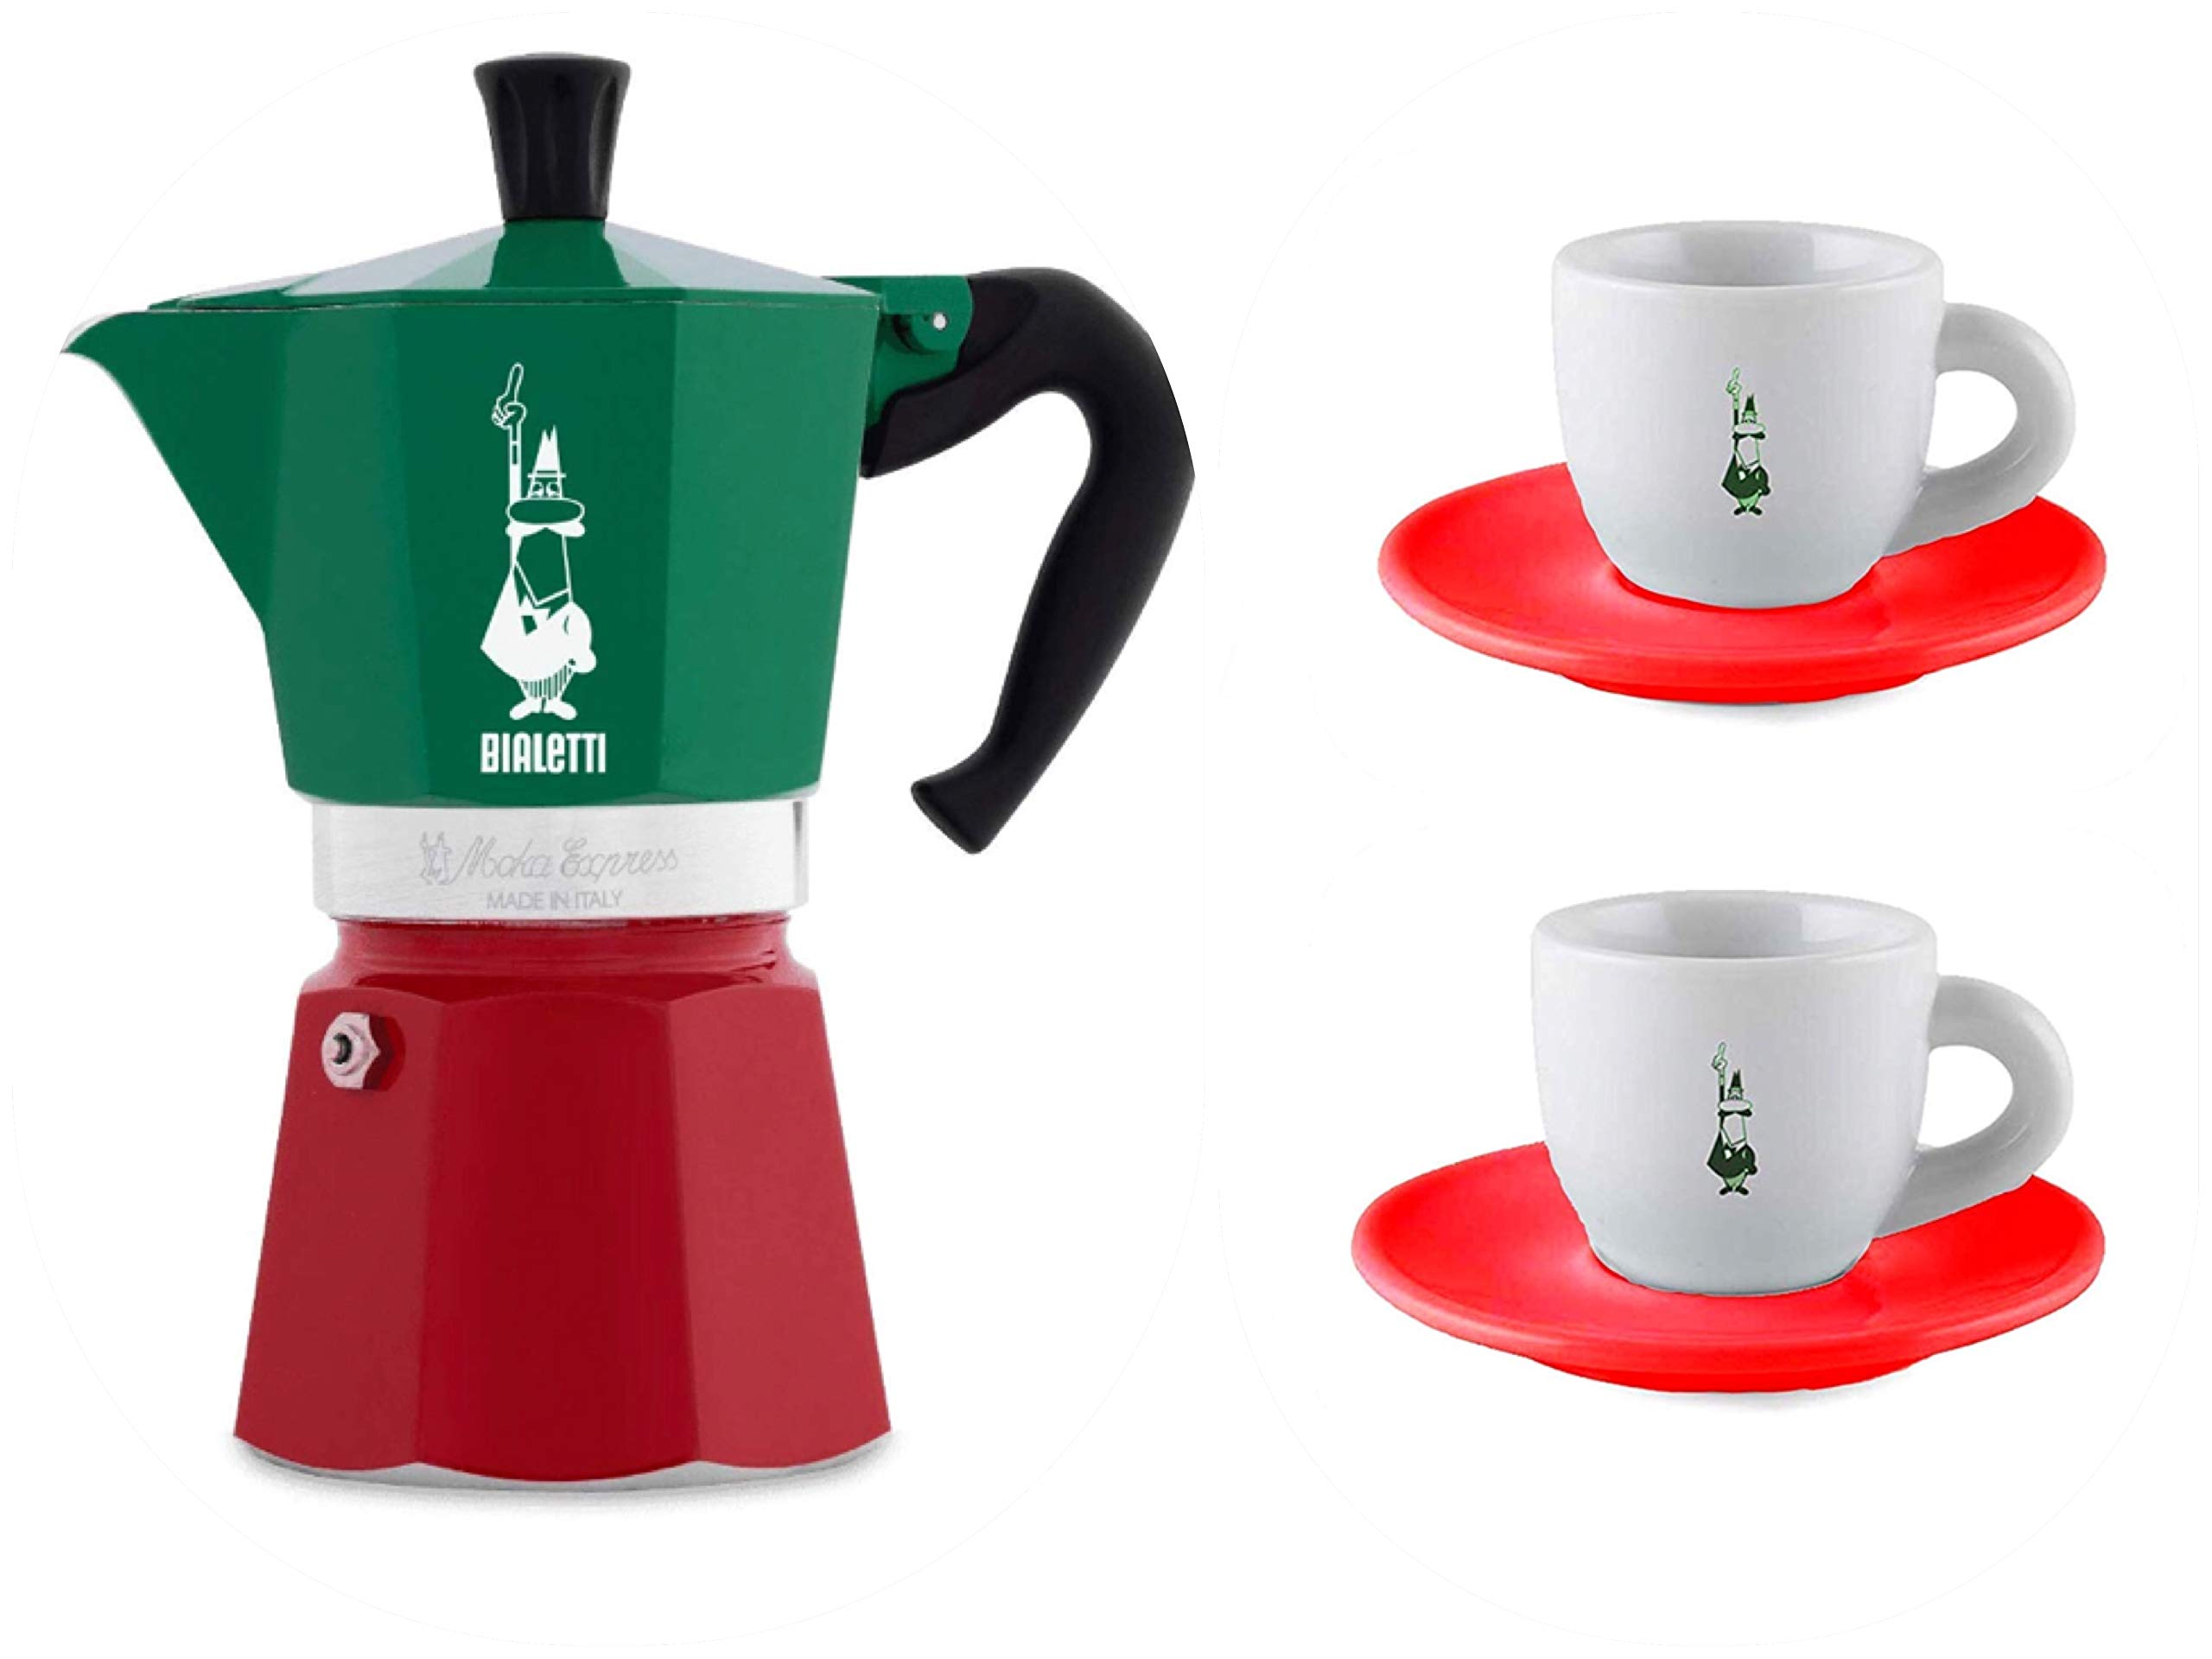 Bialetti 3-Cup Moka Express Italy Flag(Tricolor) Gift Set (2 Espresso Cups/Saucers Included) Limited Edition